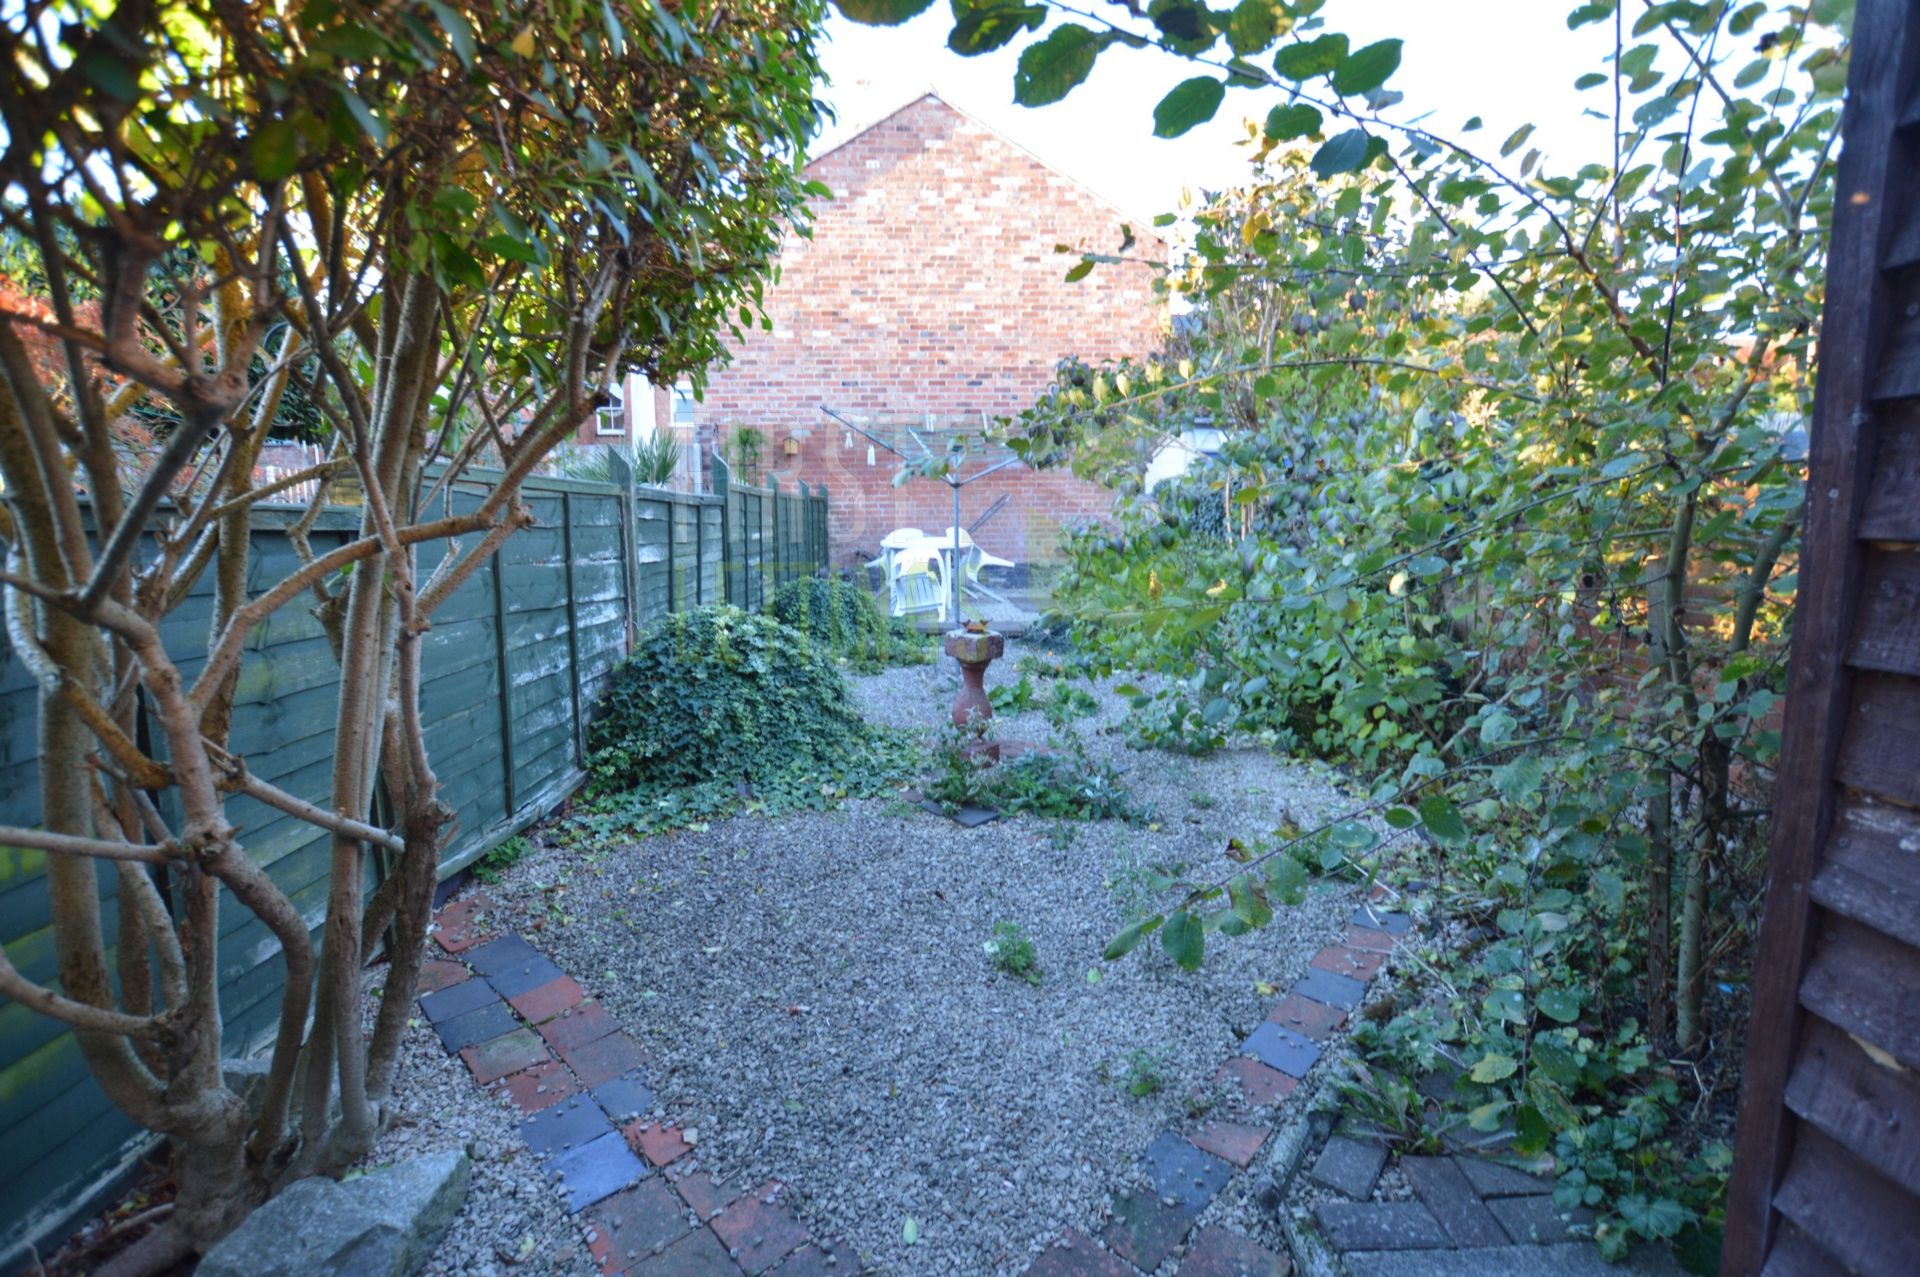 GARDEN WITH BIKE SHED